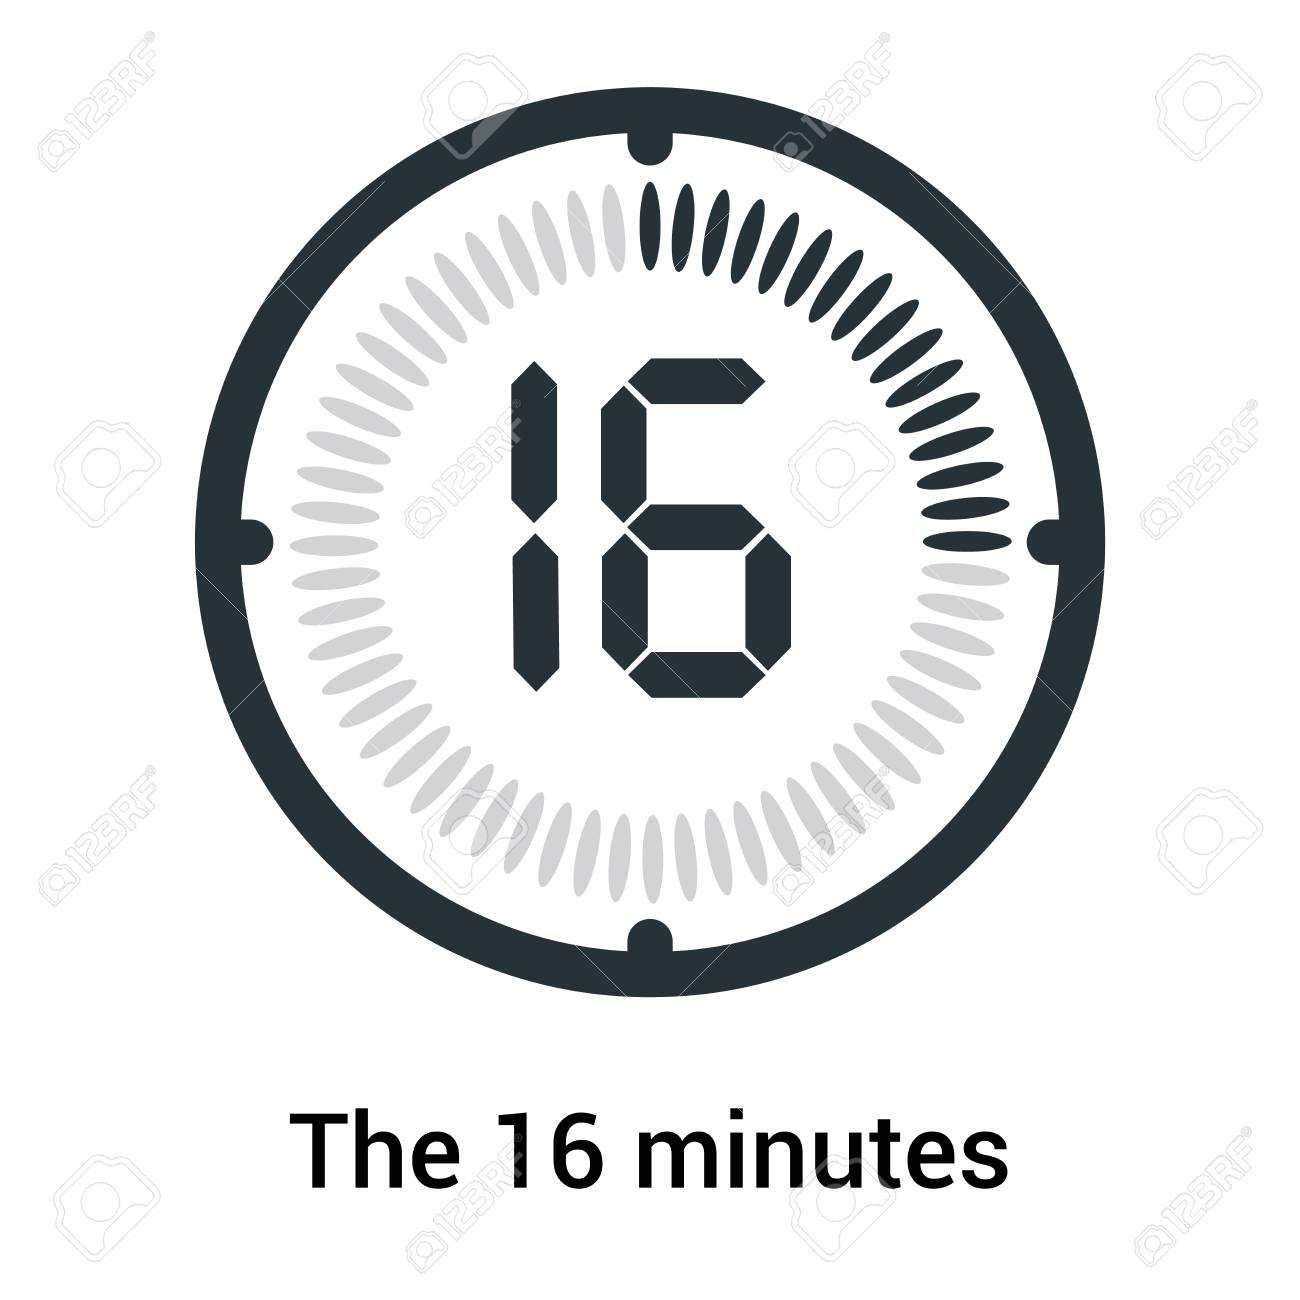 The 16 minutes icon isolated on white background, clock and watch,